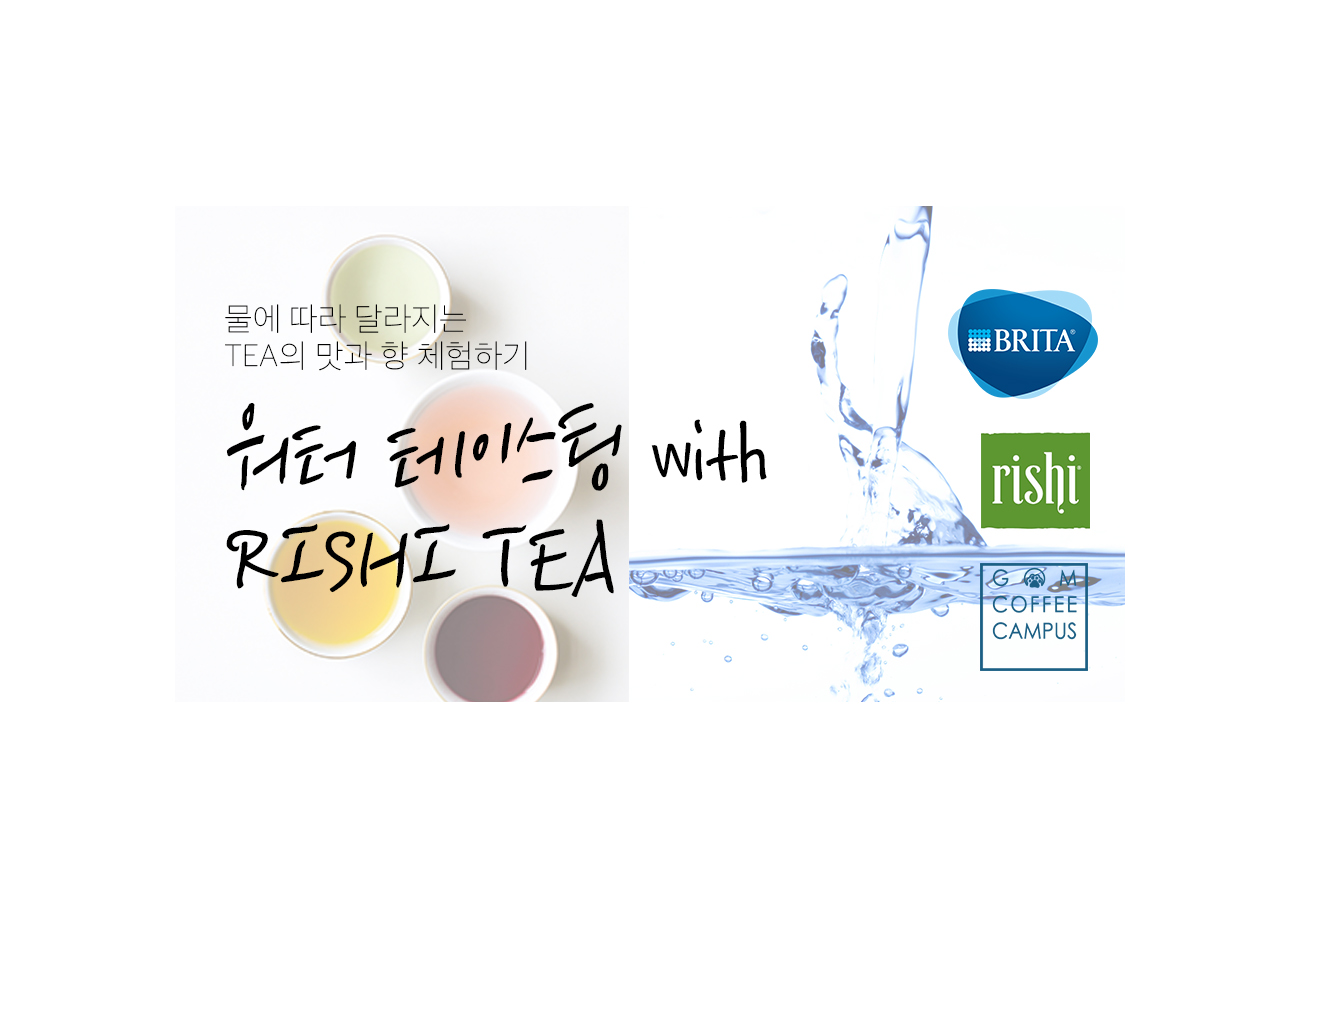 1708_watertasting_tea_banner_950x496.jpg